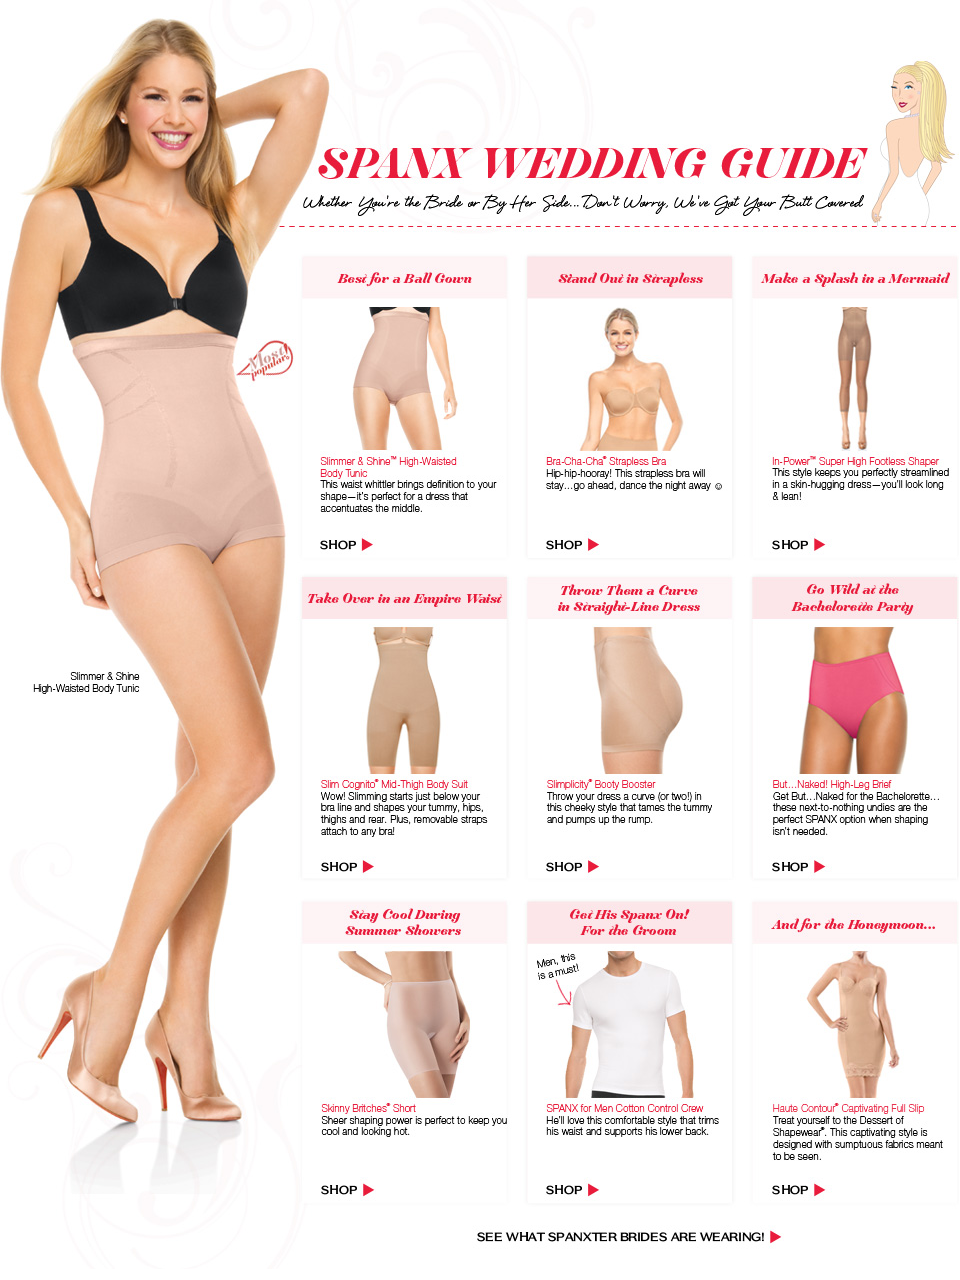 spanx are bad for you